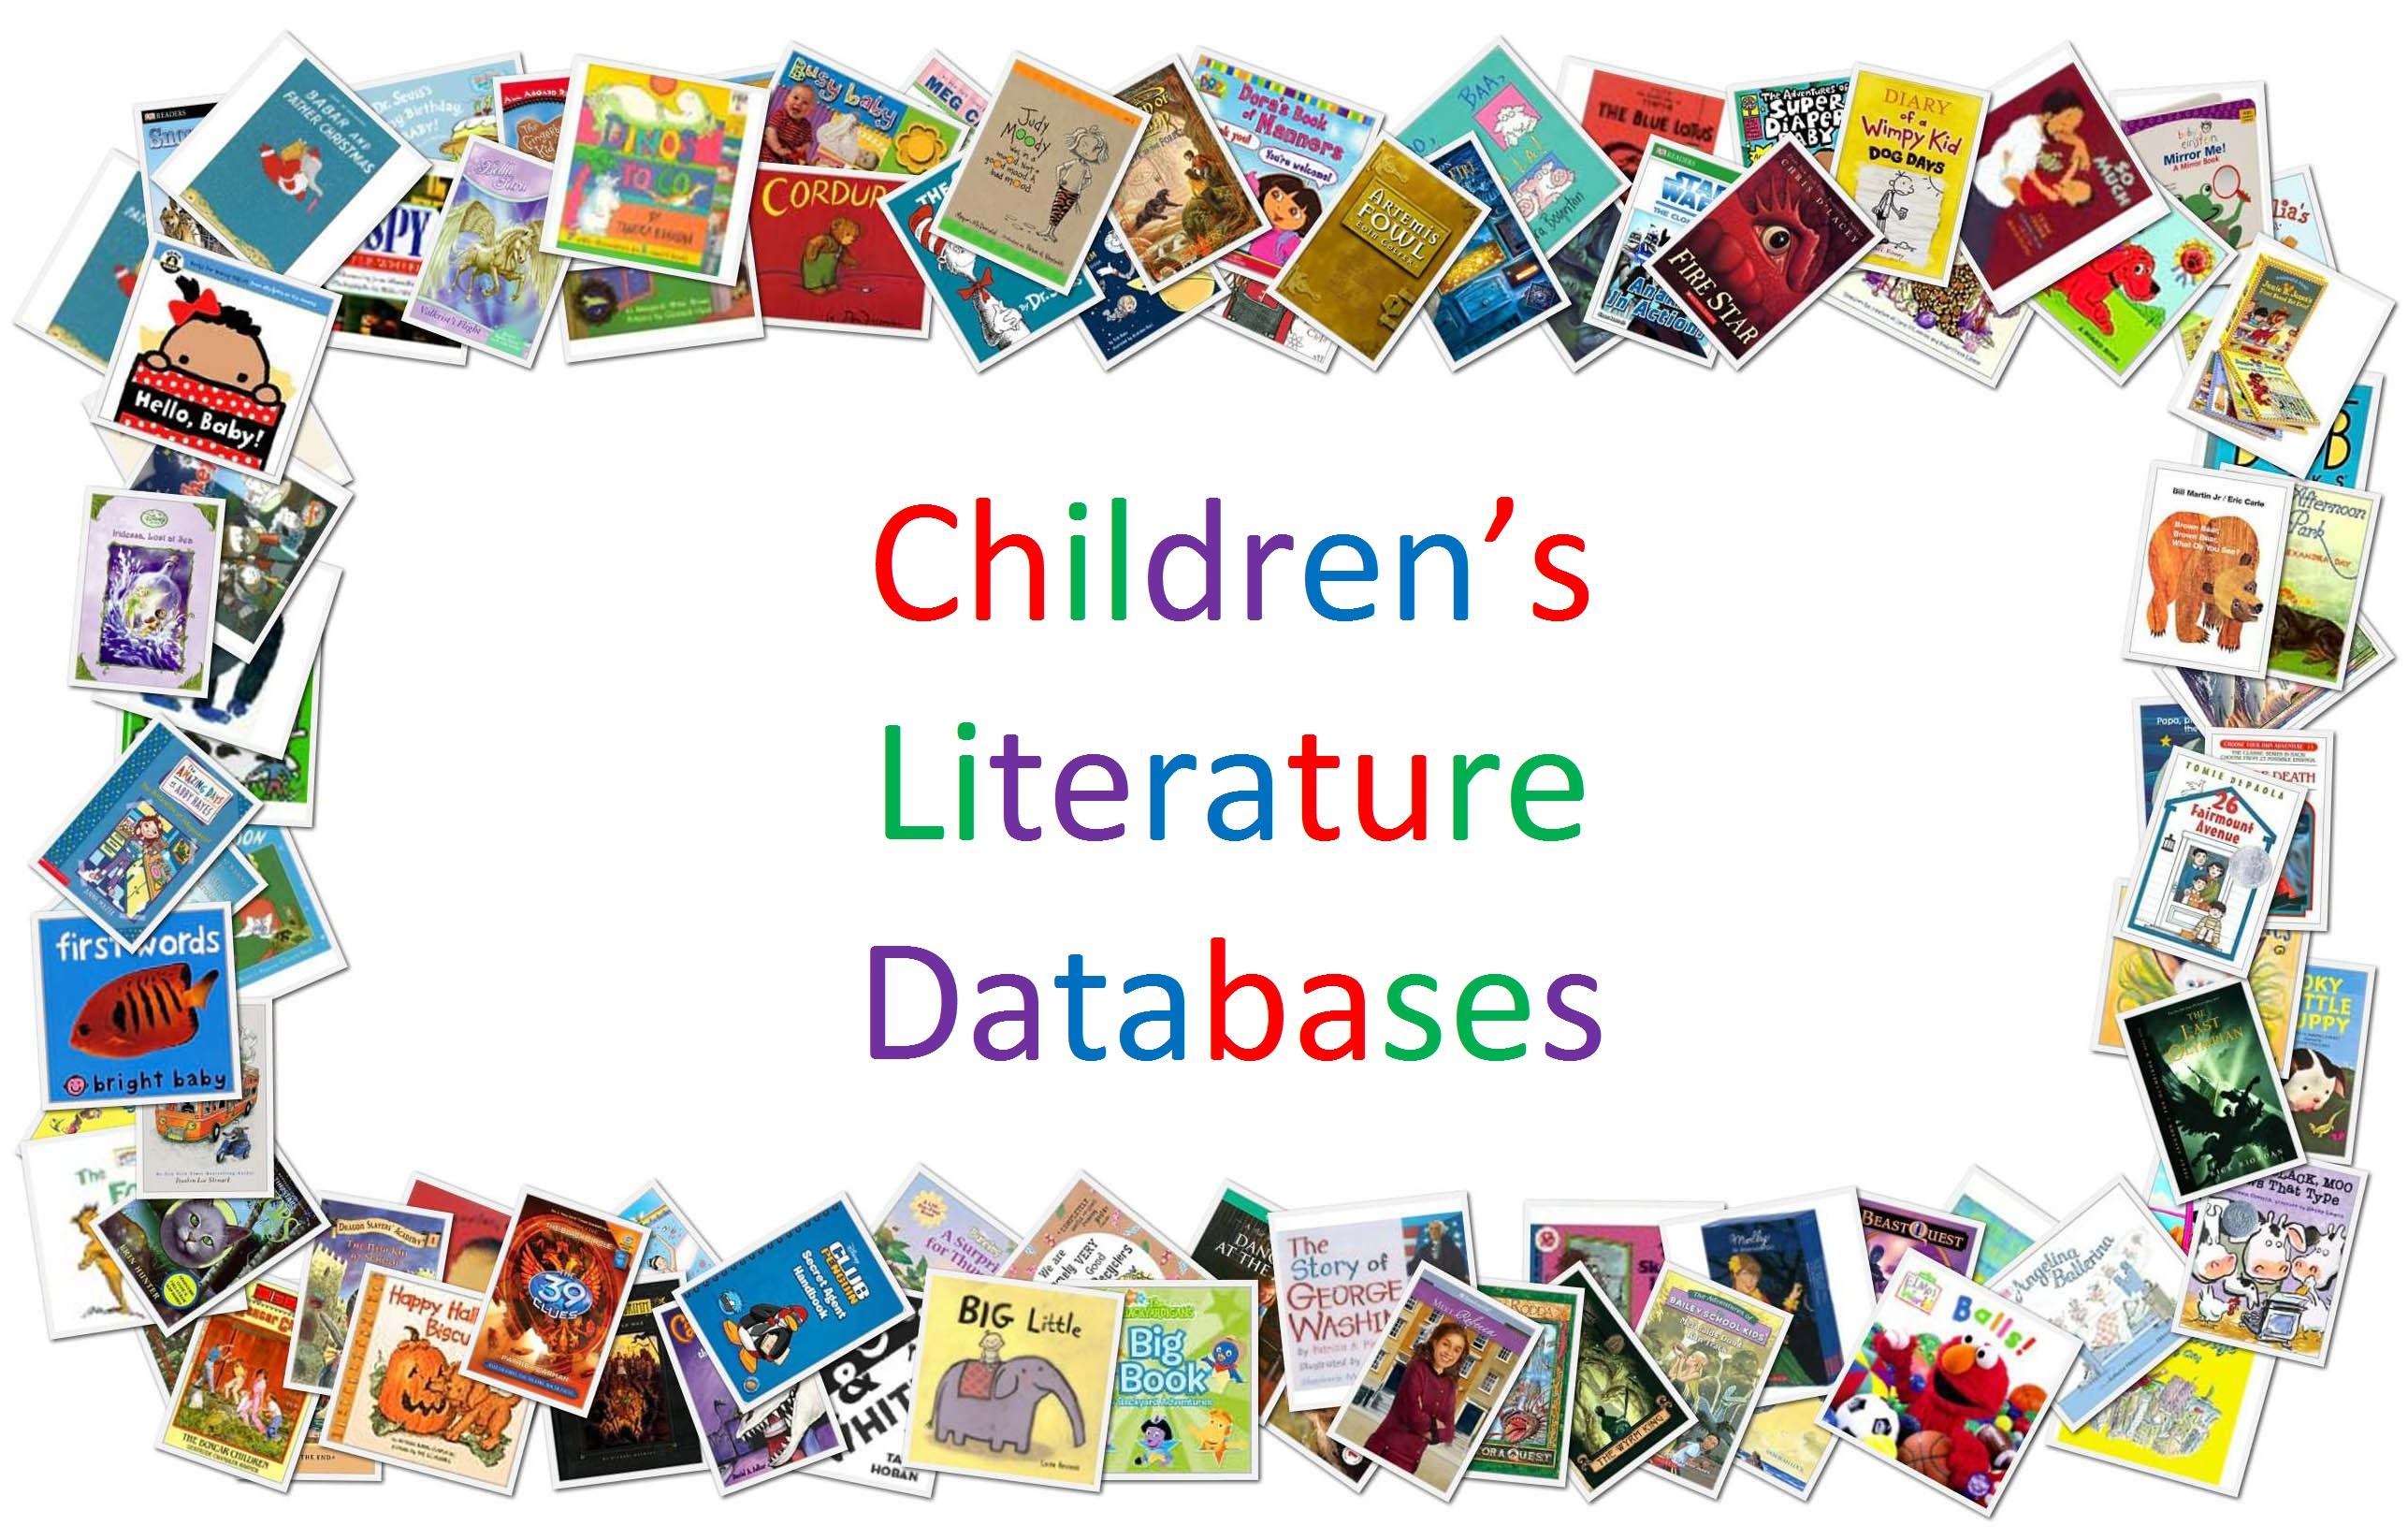 Title Page: Children's Literature Databases